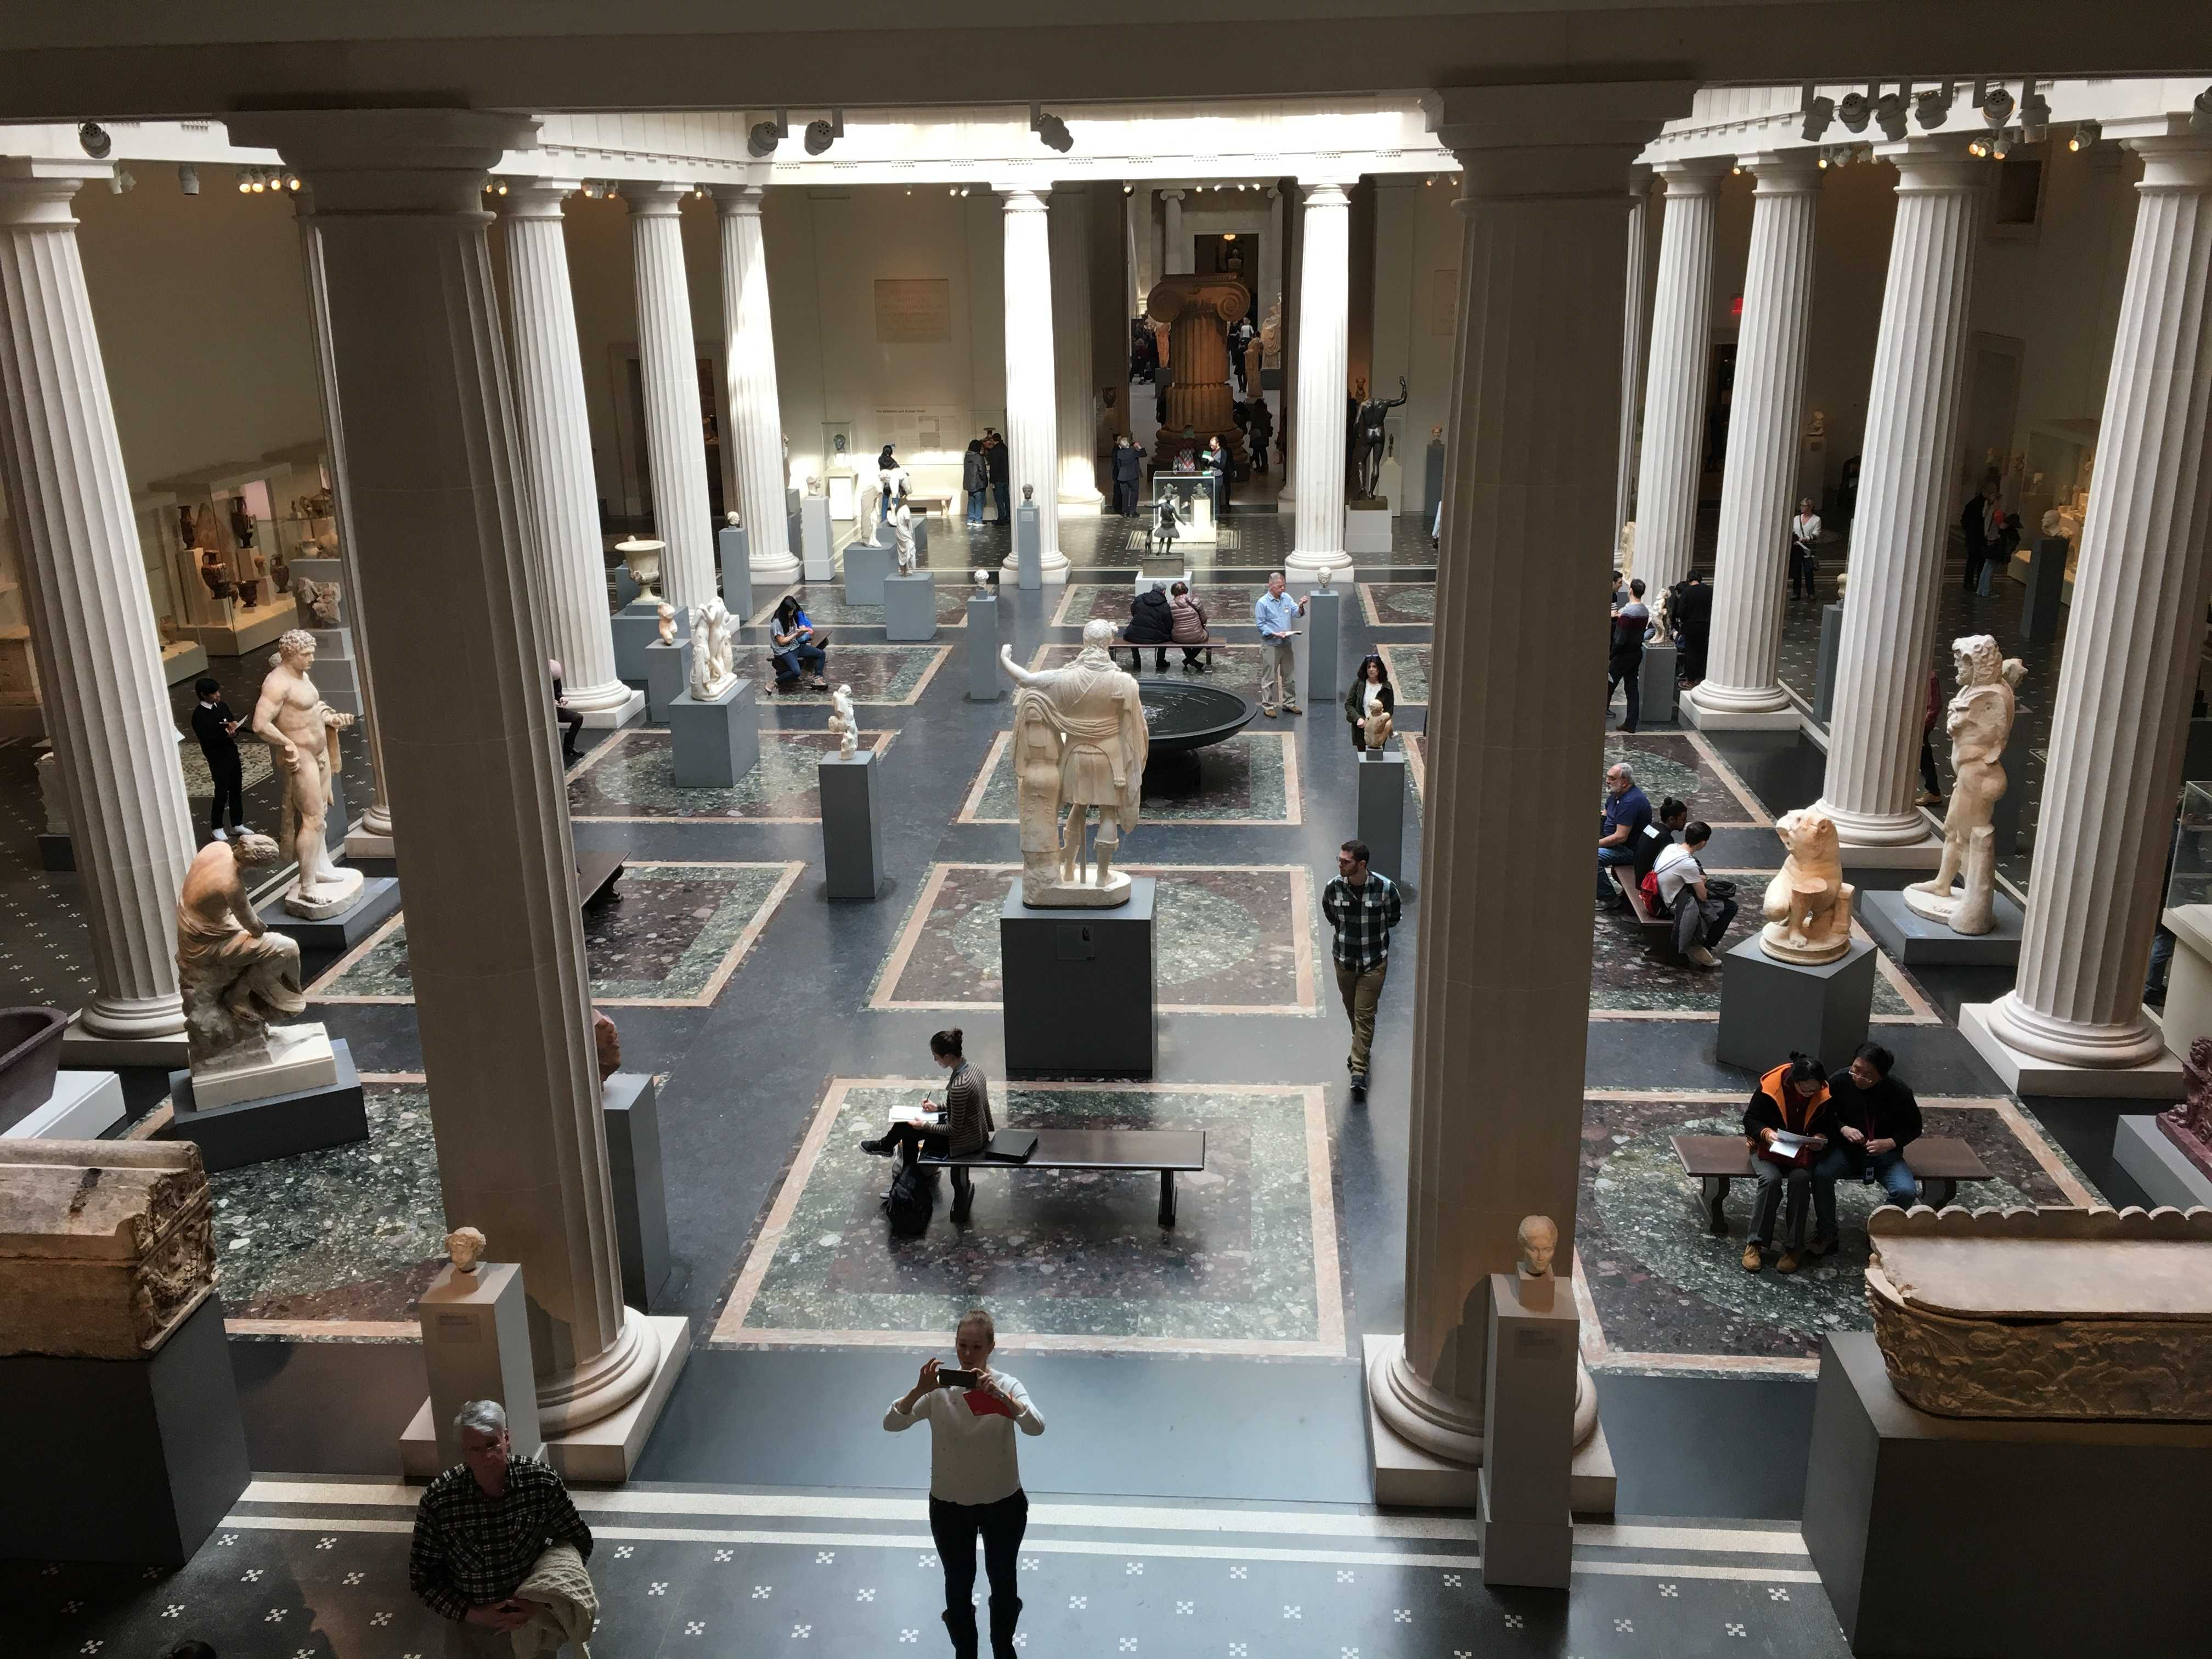 New York staple, The Met, faces financial strains despite its popularity.